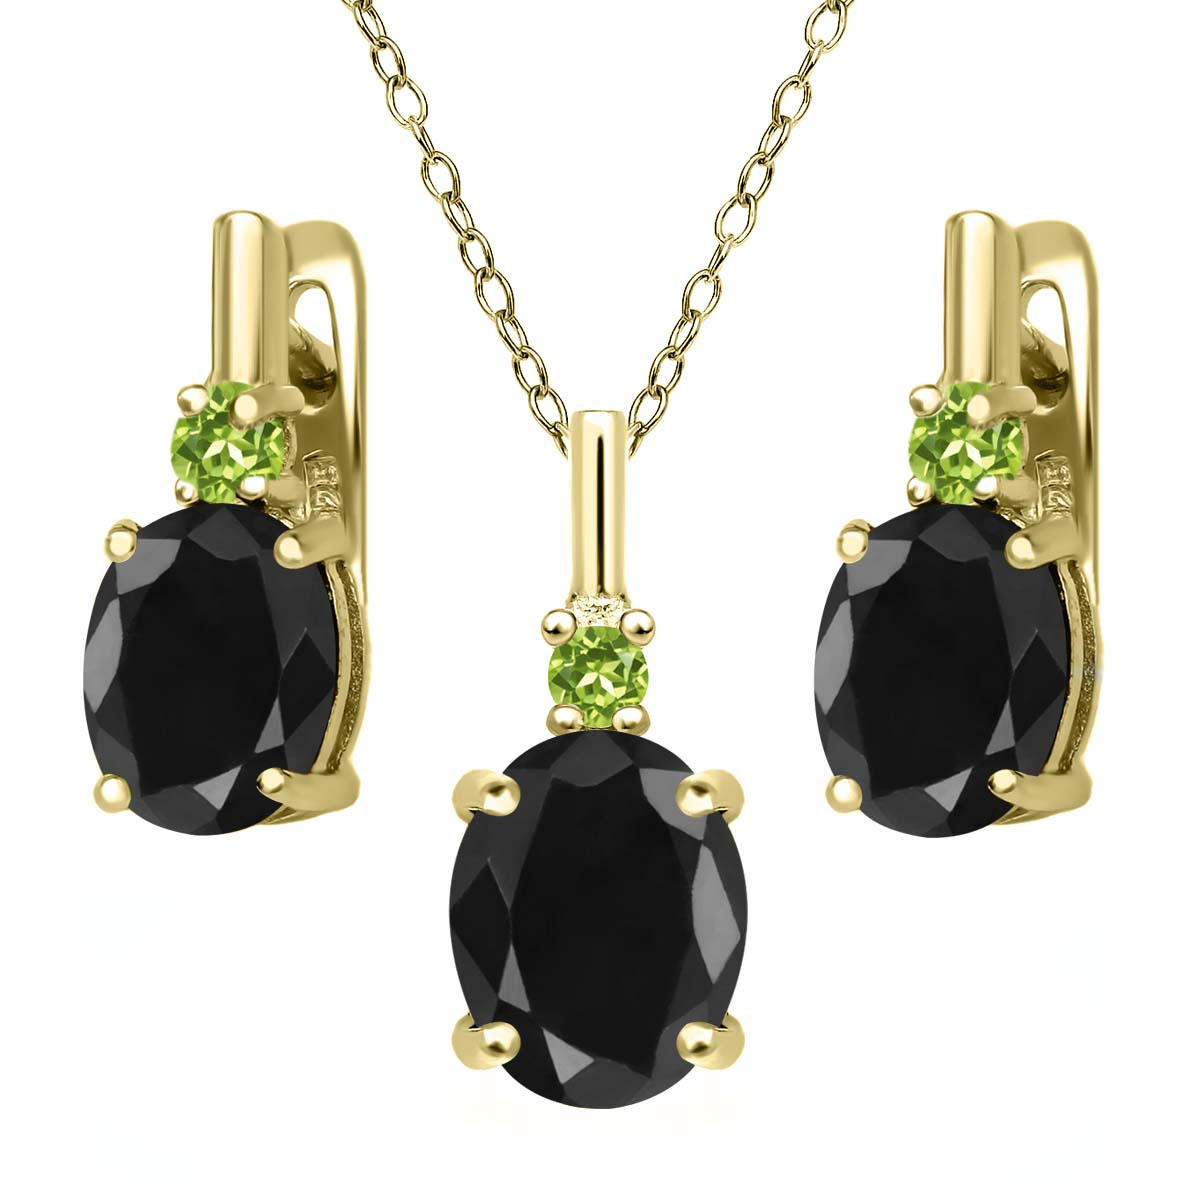 7.69 Ct Black Sapphire Green Peridot 18K Yellow Gold Plated Silver Pendant Earrings Set by